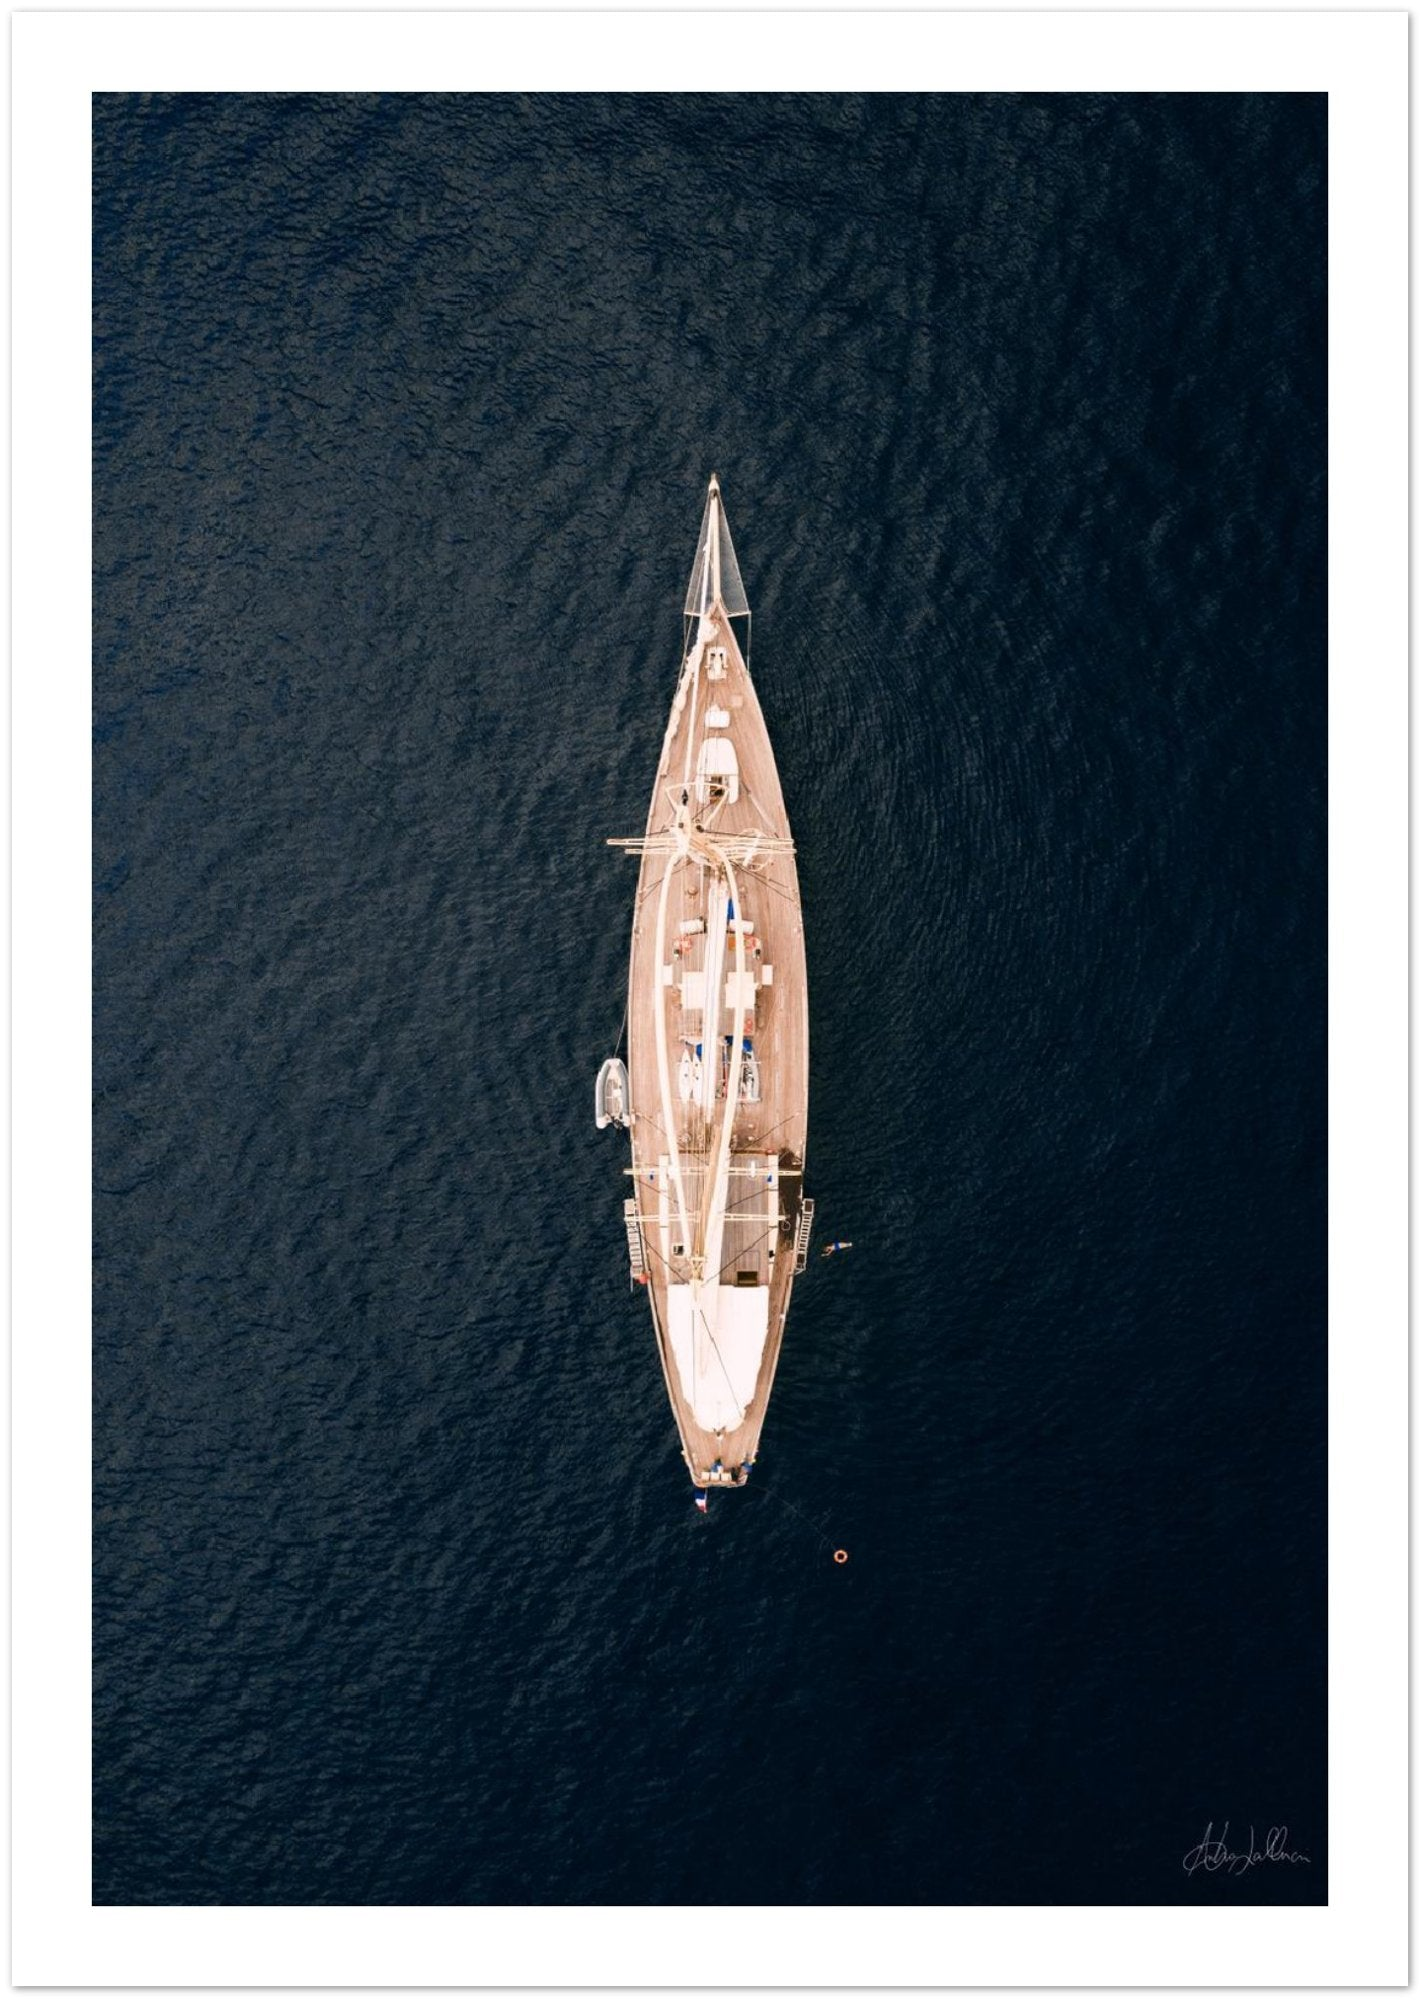 """Cruise collection"" Limited Edition Amalfi Coast Premium Semi-Glossy Print"